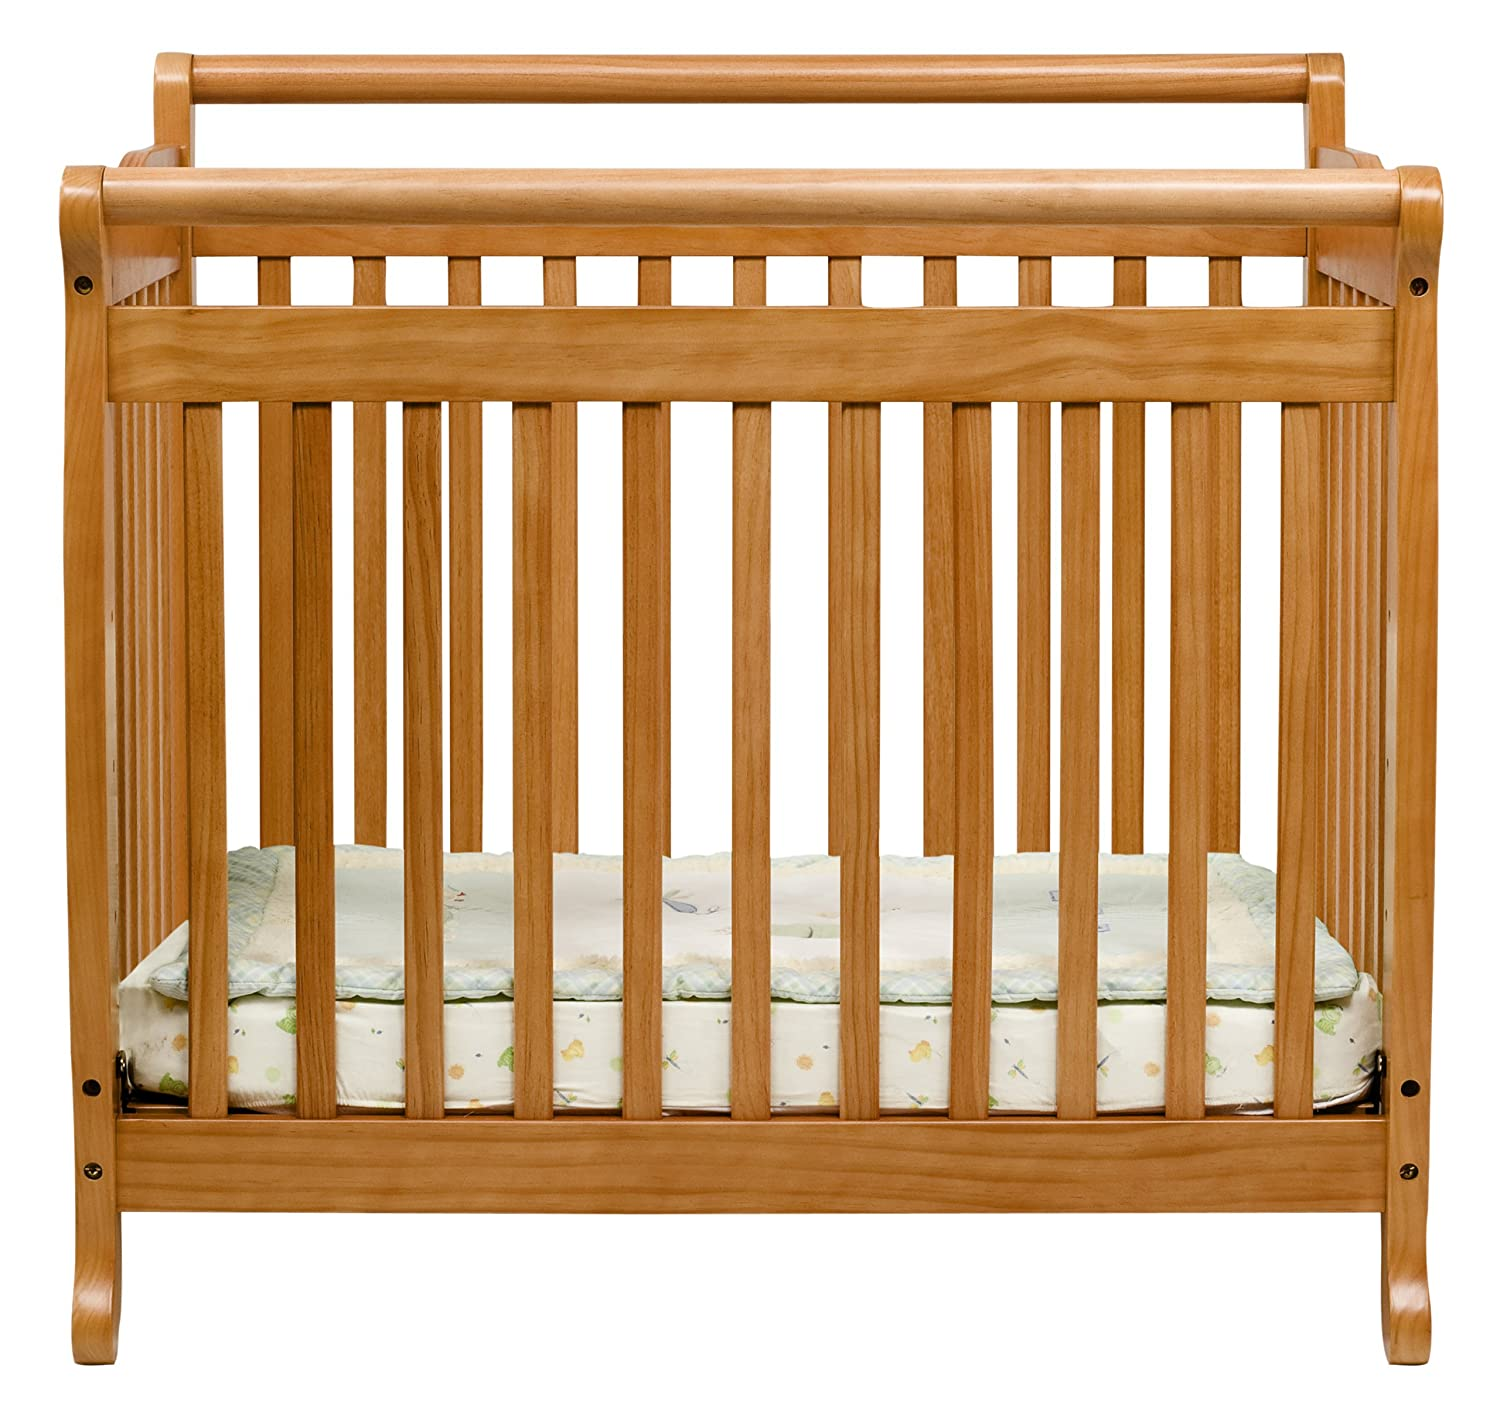 best room ideas mini size small decor changing make tables hanging spectacular canada with of floor cribs the baby crib basket for blanket drawers trendy sheets bookshelf lamps full babies stuff